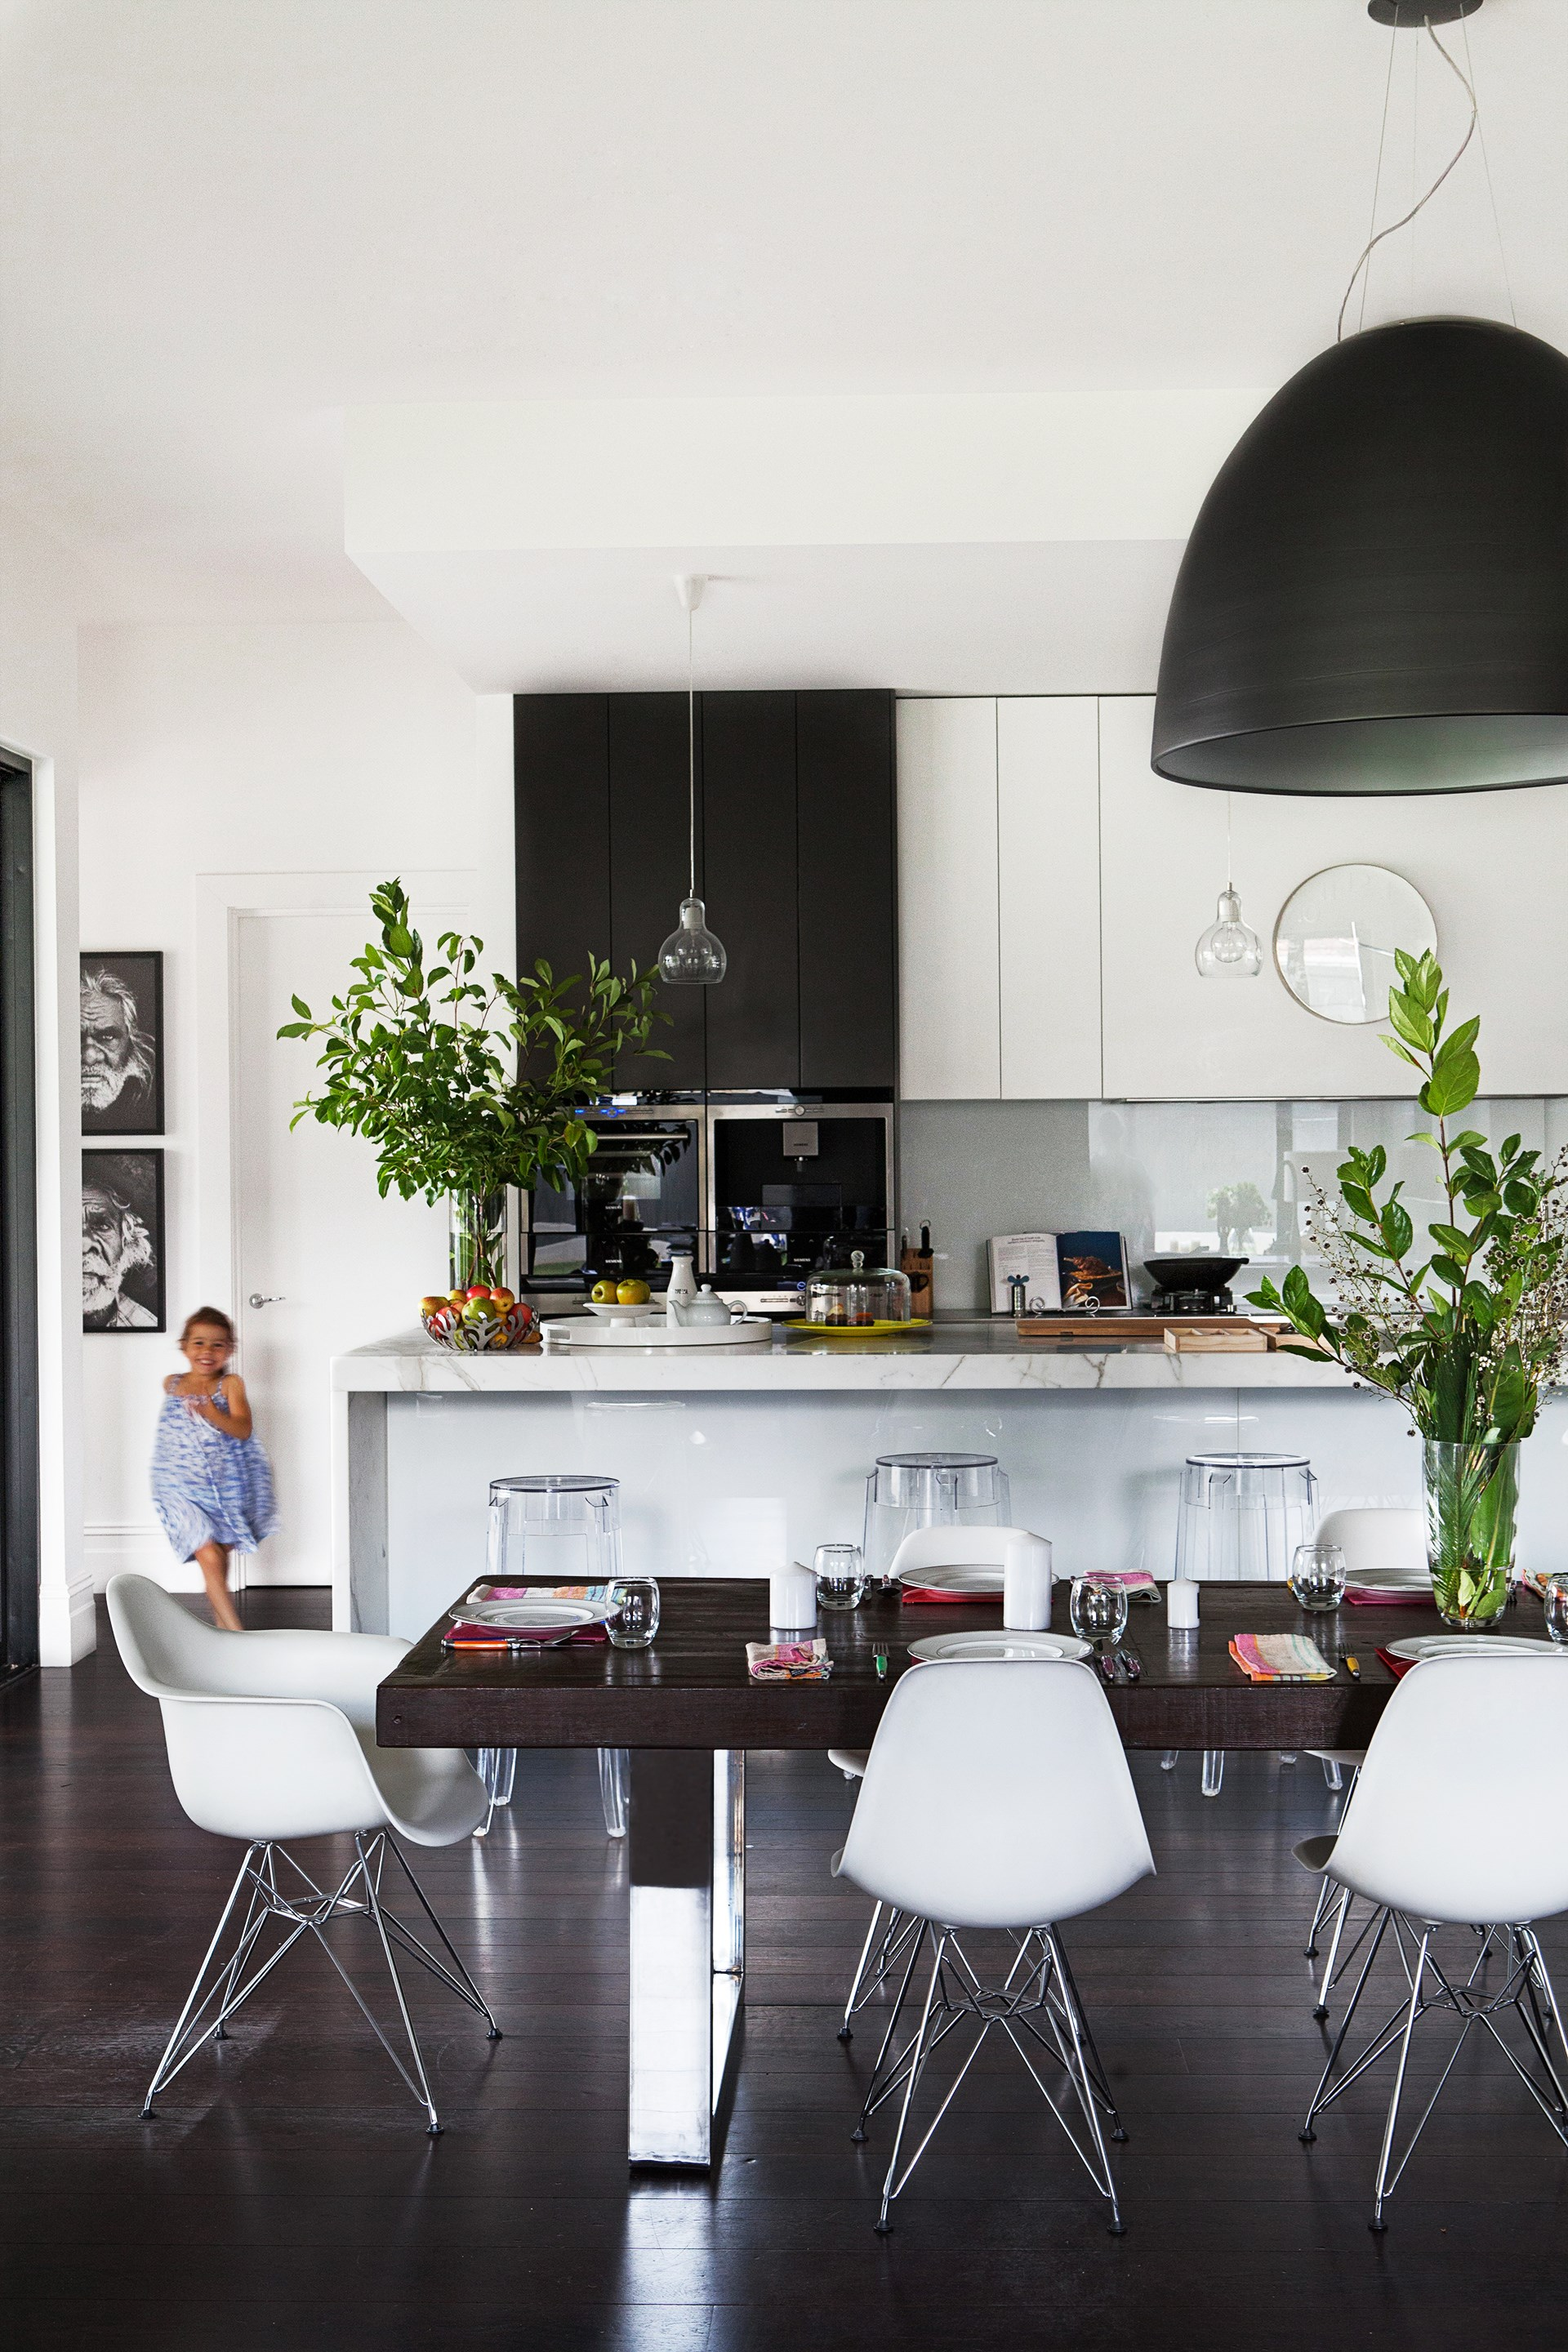 In this [Adelaide family home](http://www.homestolove.com.au/adelaide-family-home-renovation-3637) richly veined Calacatta marble is the perfect transition material to unite the kitchen's contrasting colour scheme. *Photo: James Knowler*